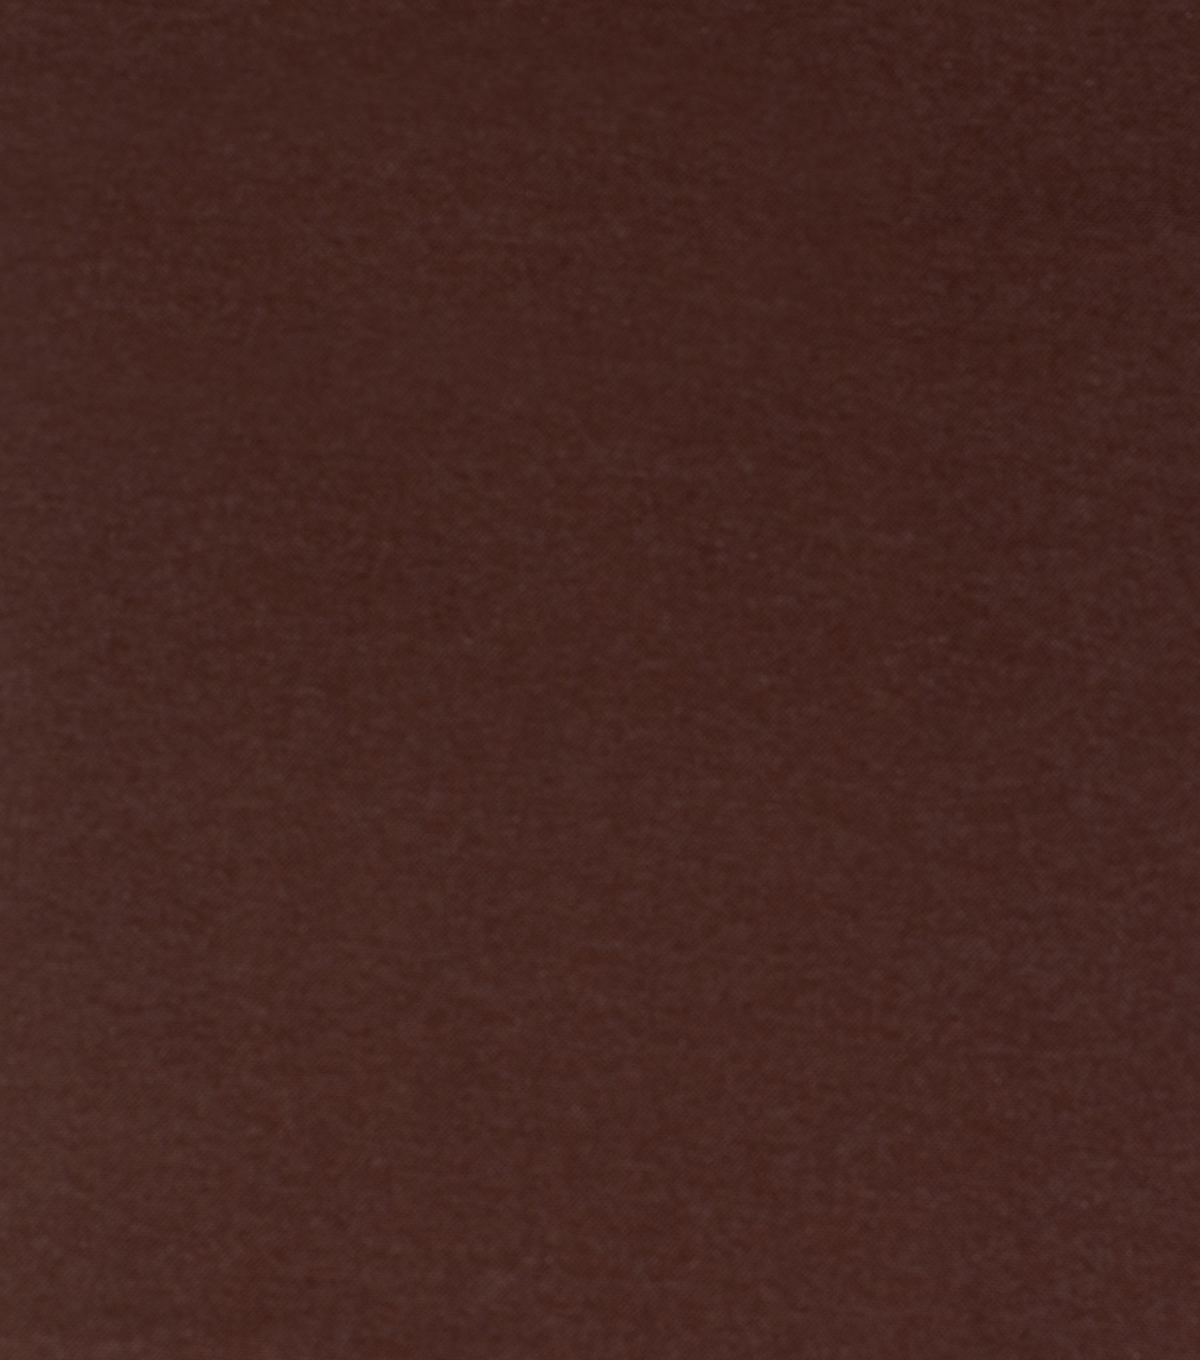 Home Decor 8\u0022x8\u0022 Fabric Swatch-Signature Series Solitaire  Brown